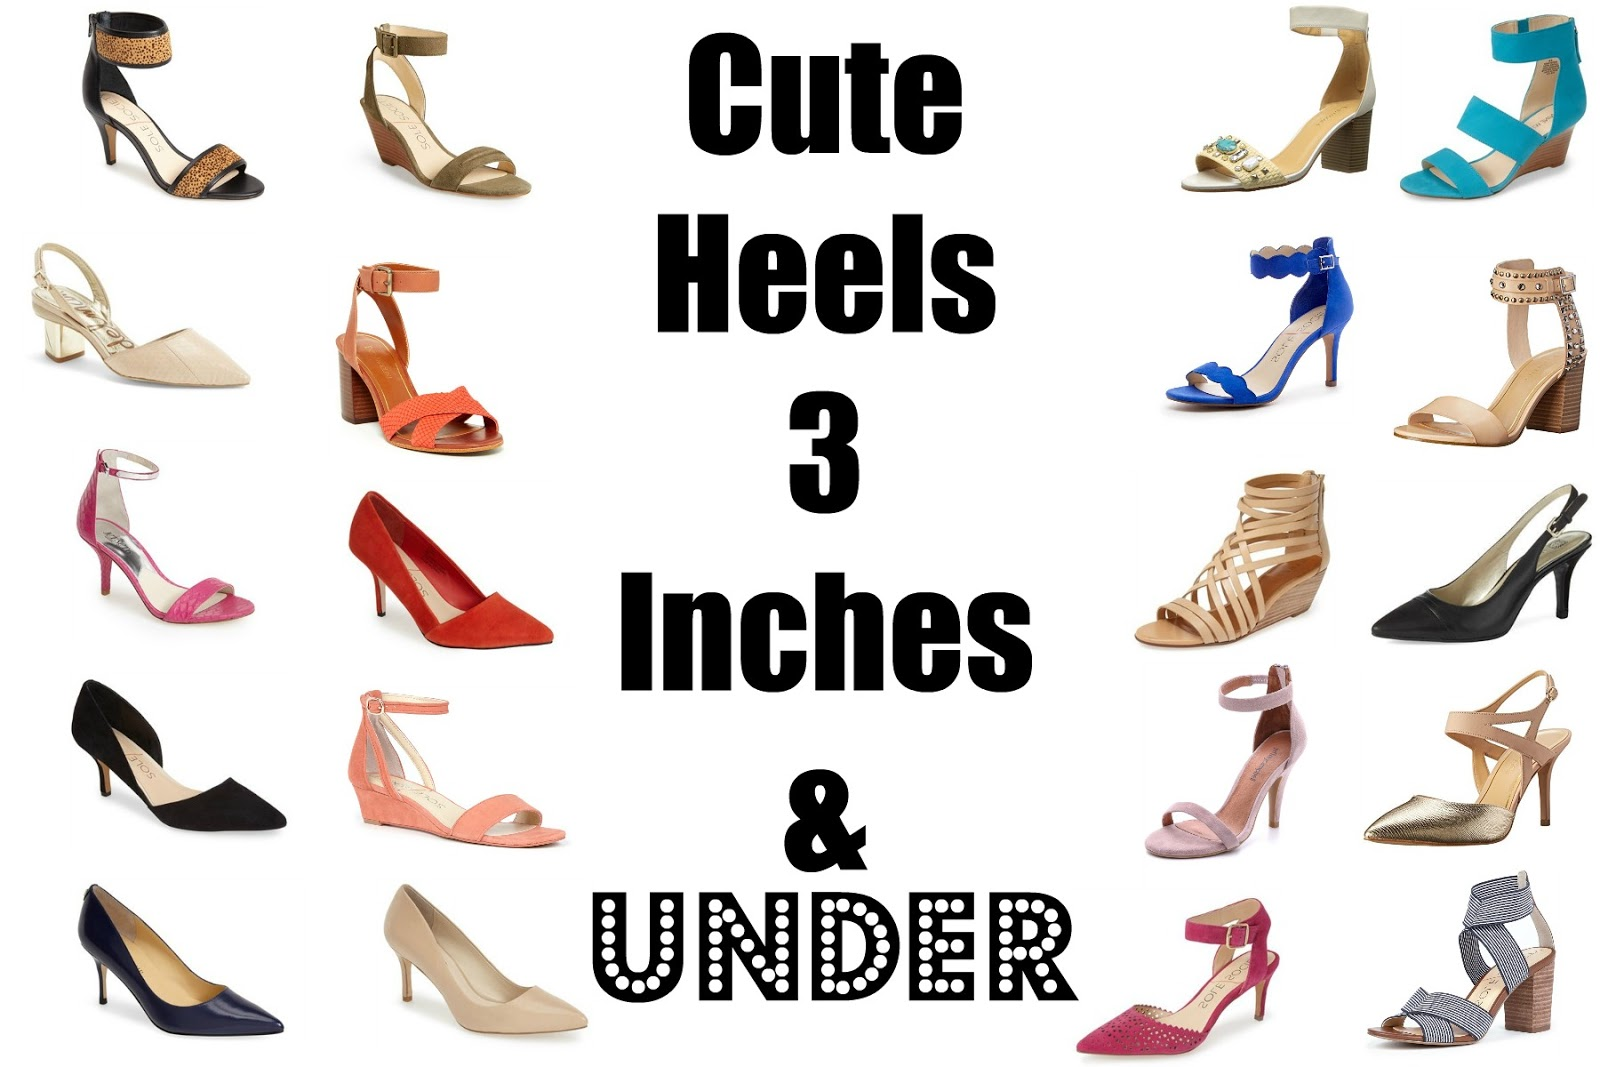 3 Inch Chunky Heel Shoes